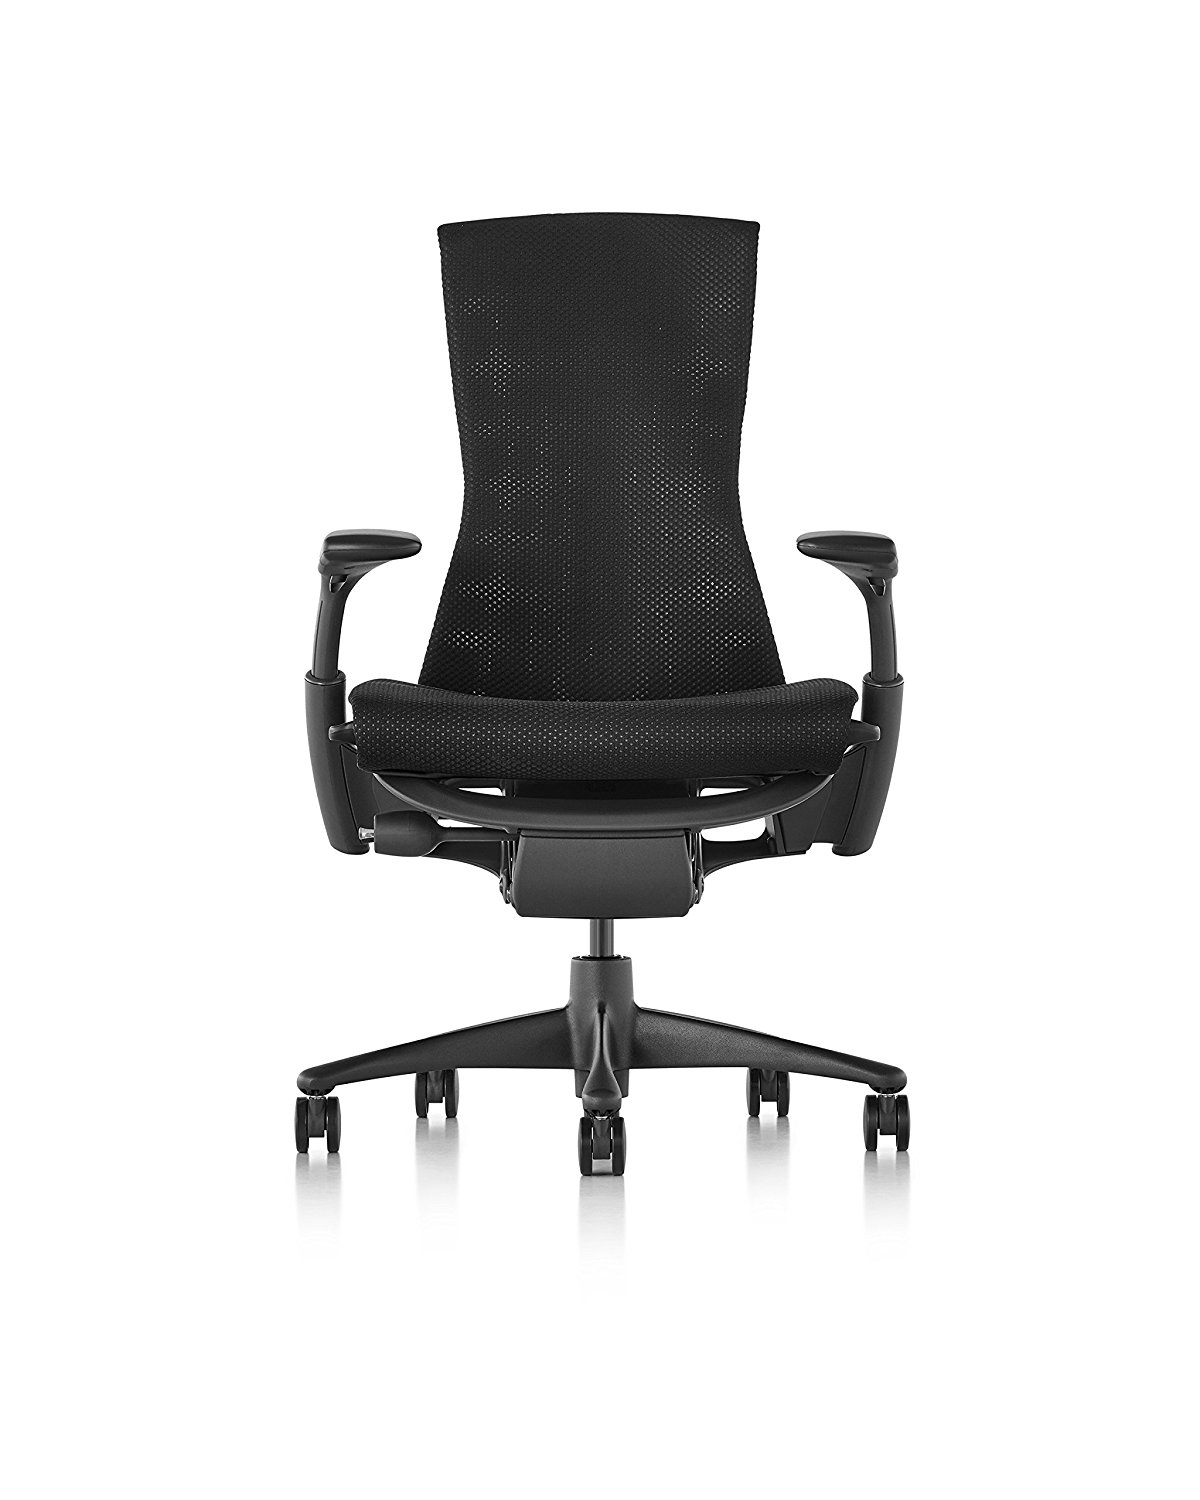 desk chair herman miller upholstered rocking best chairs for any office steelcase and more 7 of the